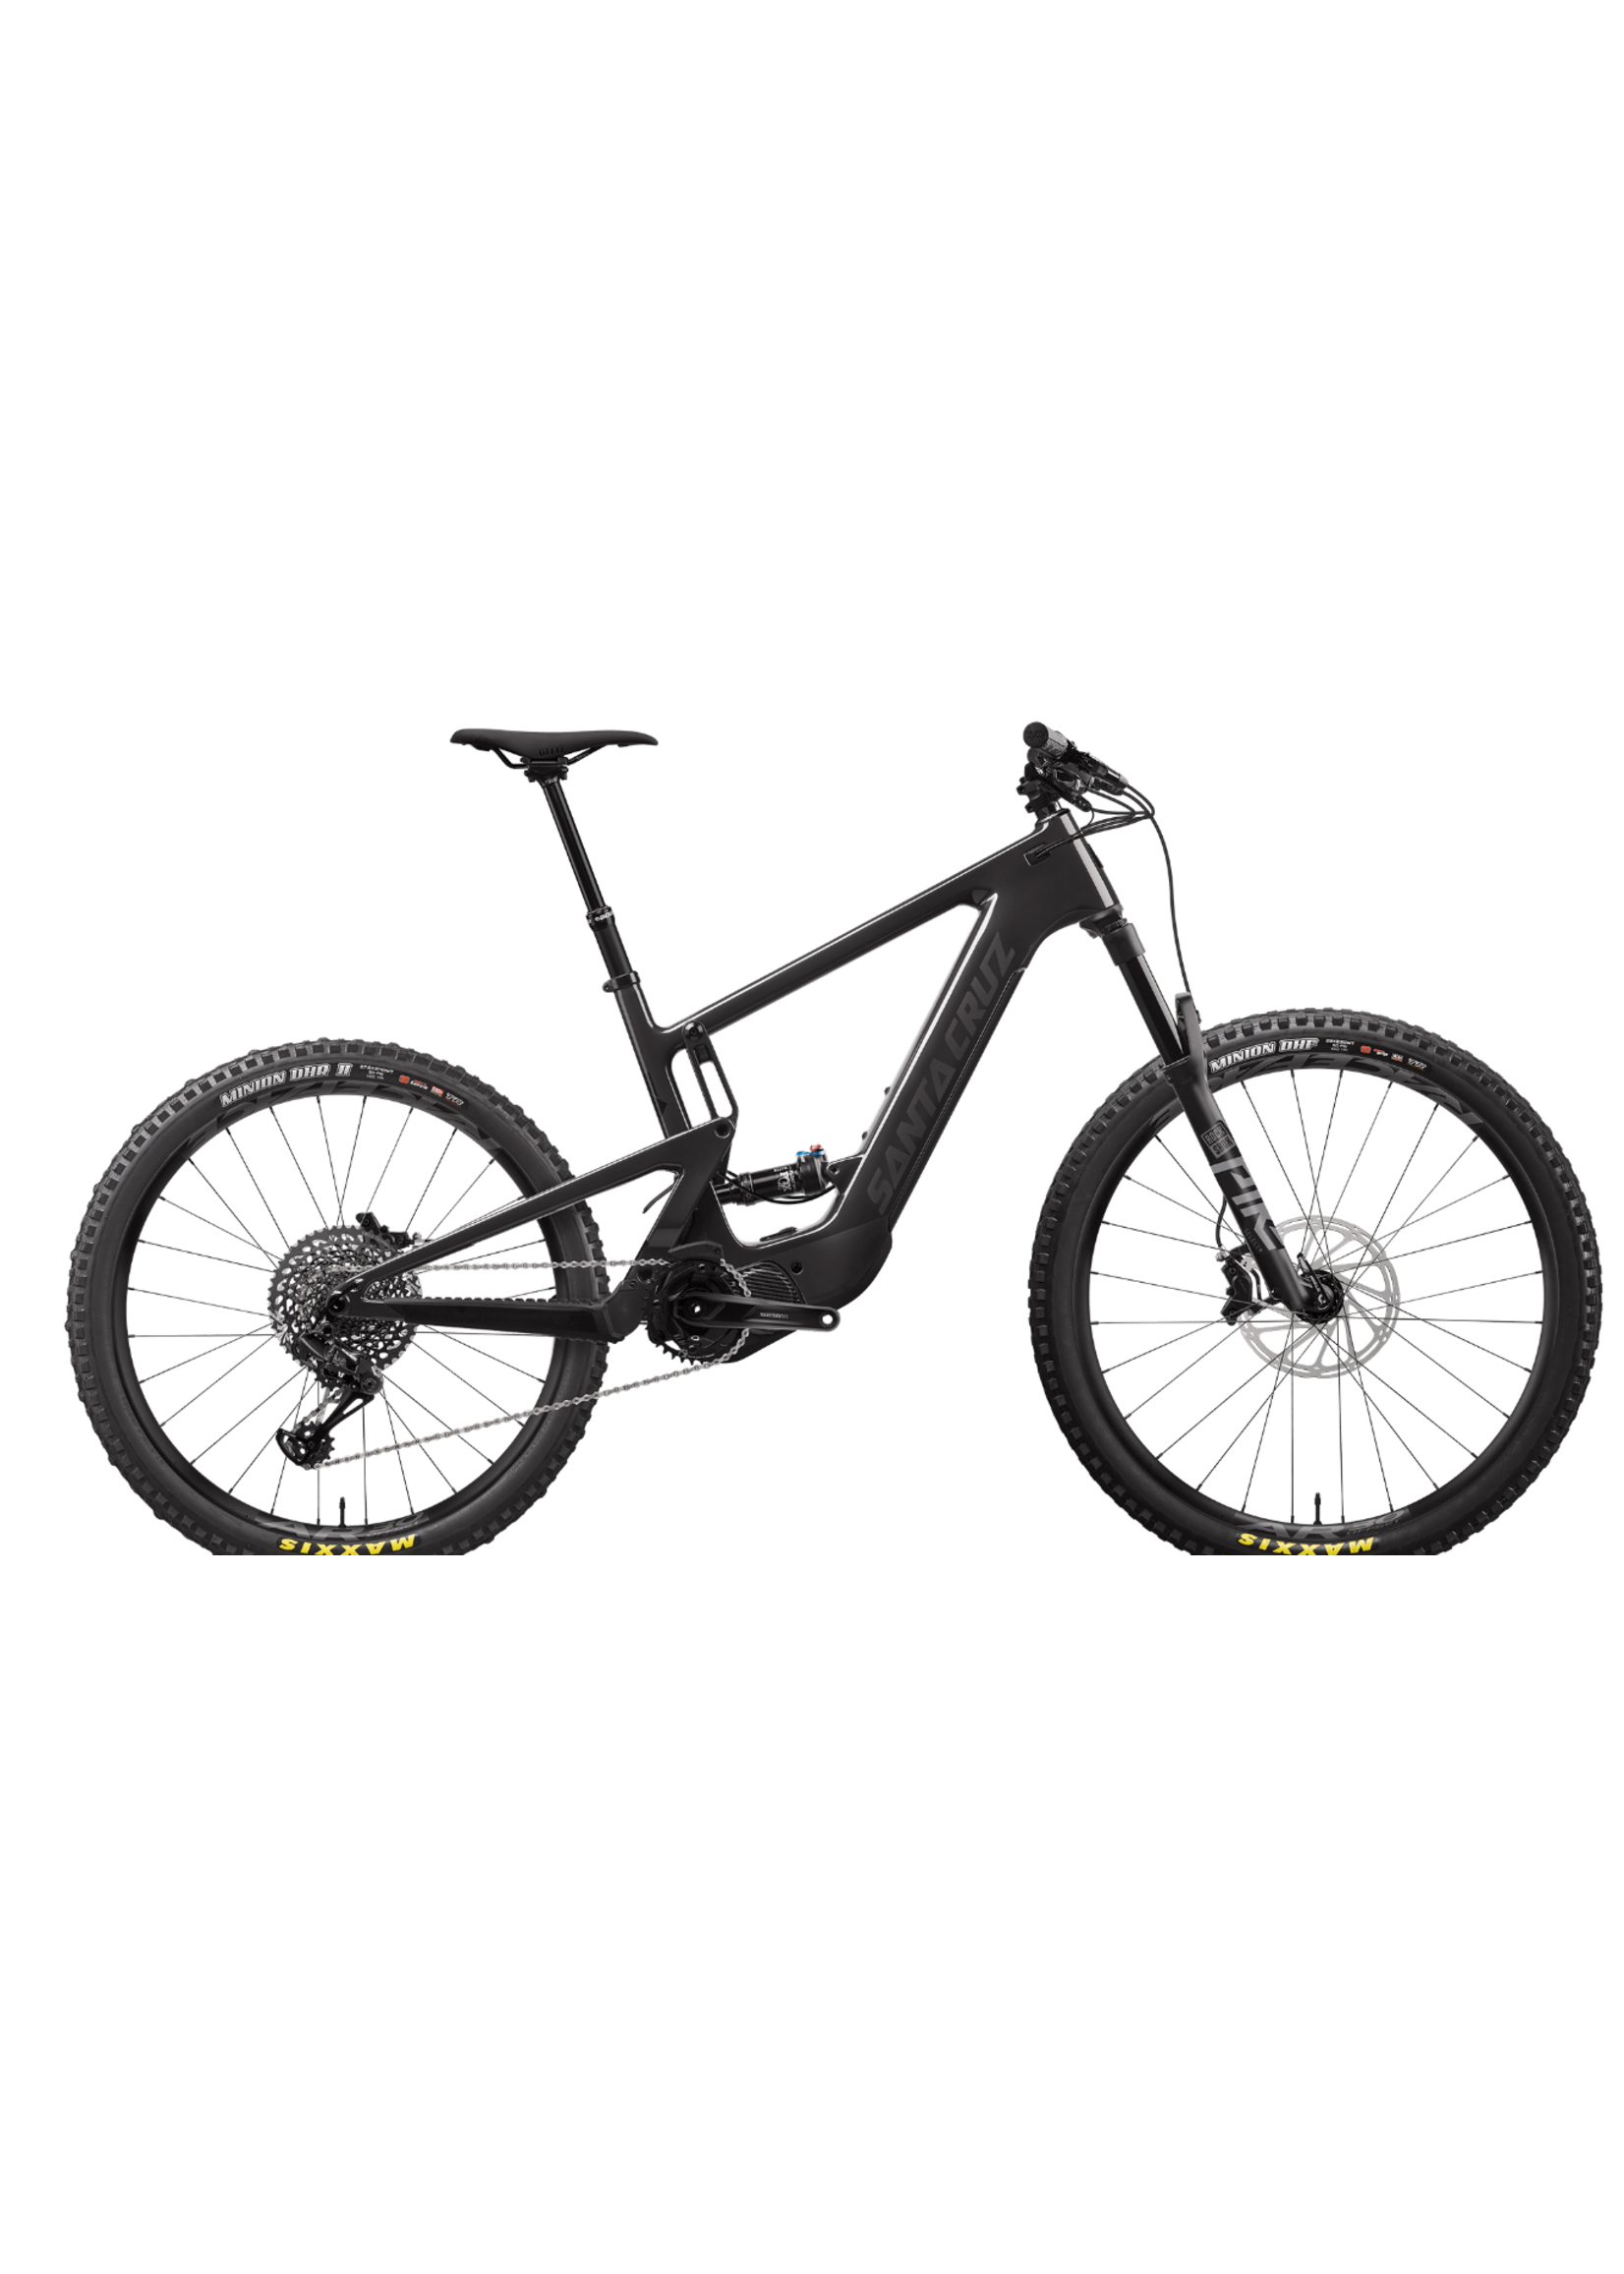 Santa Cruz Bicycles 2021 Santa Cruz Heckler MX CC, S-Kit